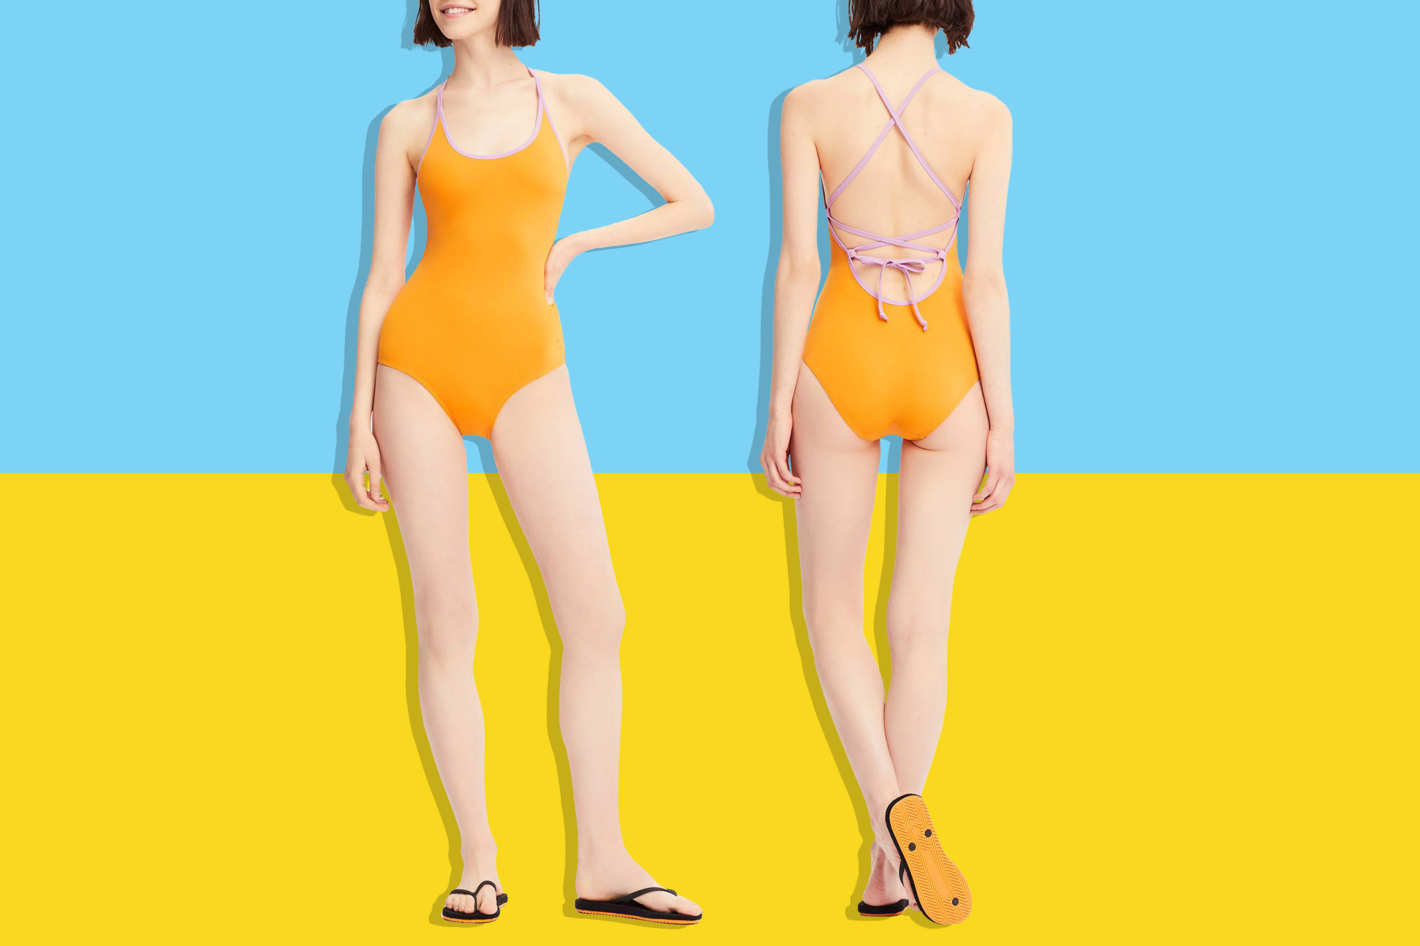 Uniqlo Women's One-Piece Swimsuit